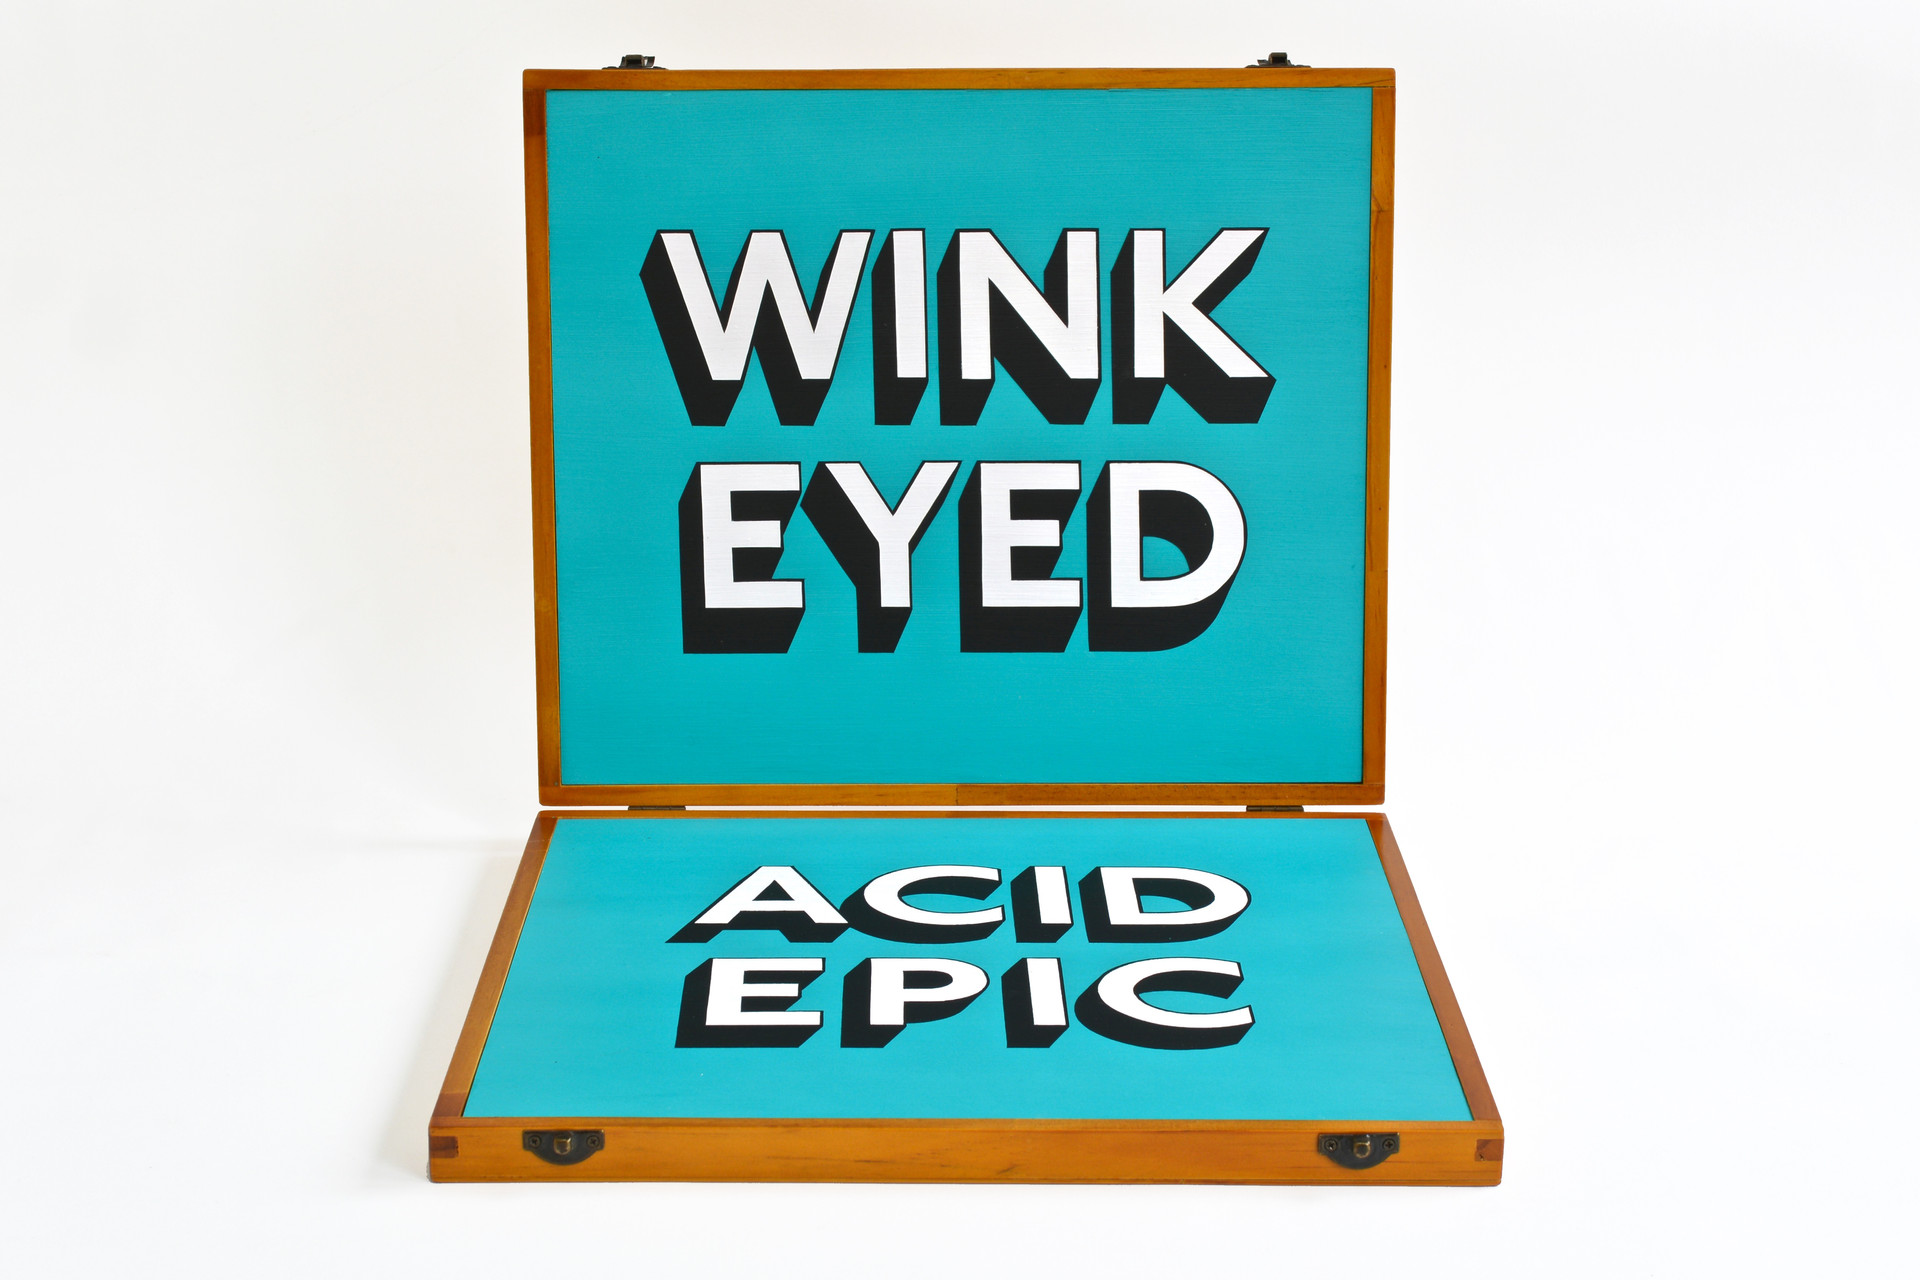 WINK_EYED_ACID_EPIC_2.jpg